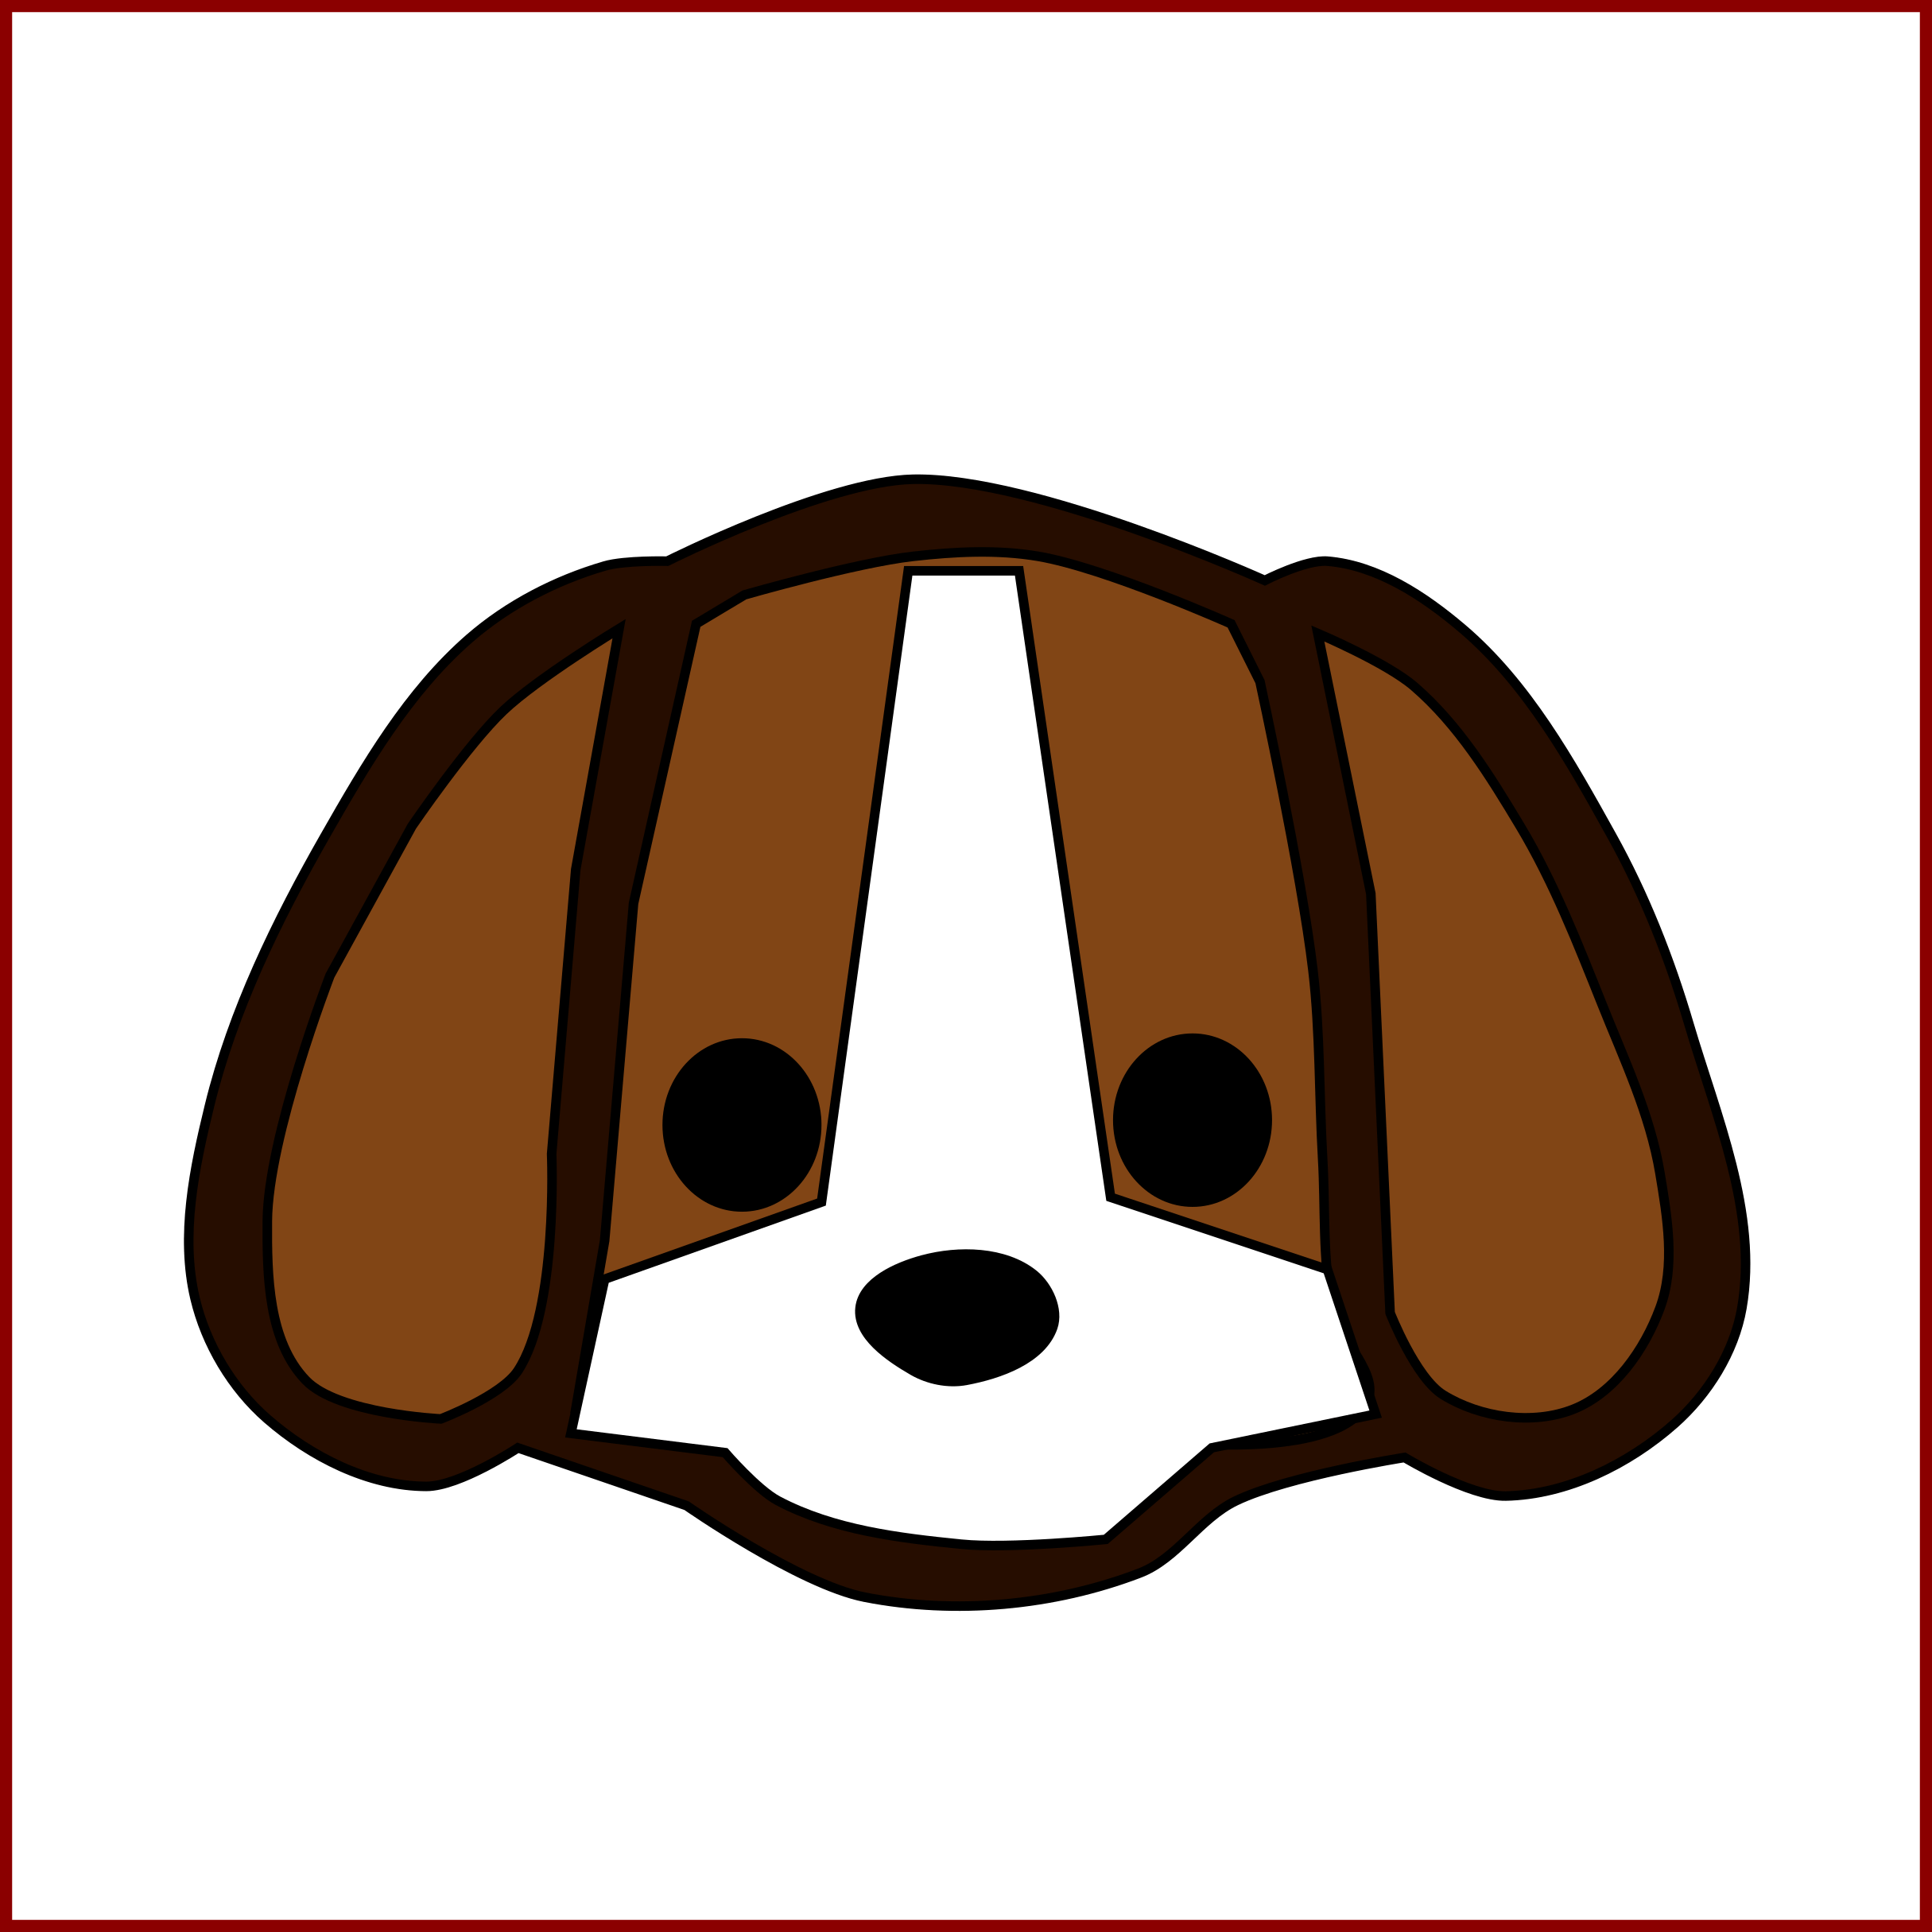 Dogs clipart ball. Amazing dog picture for